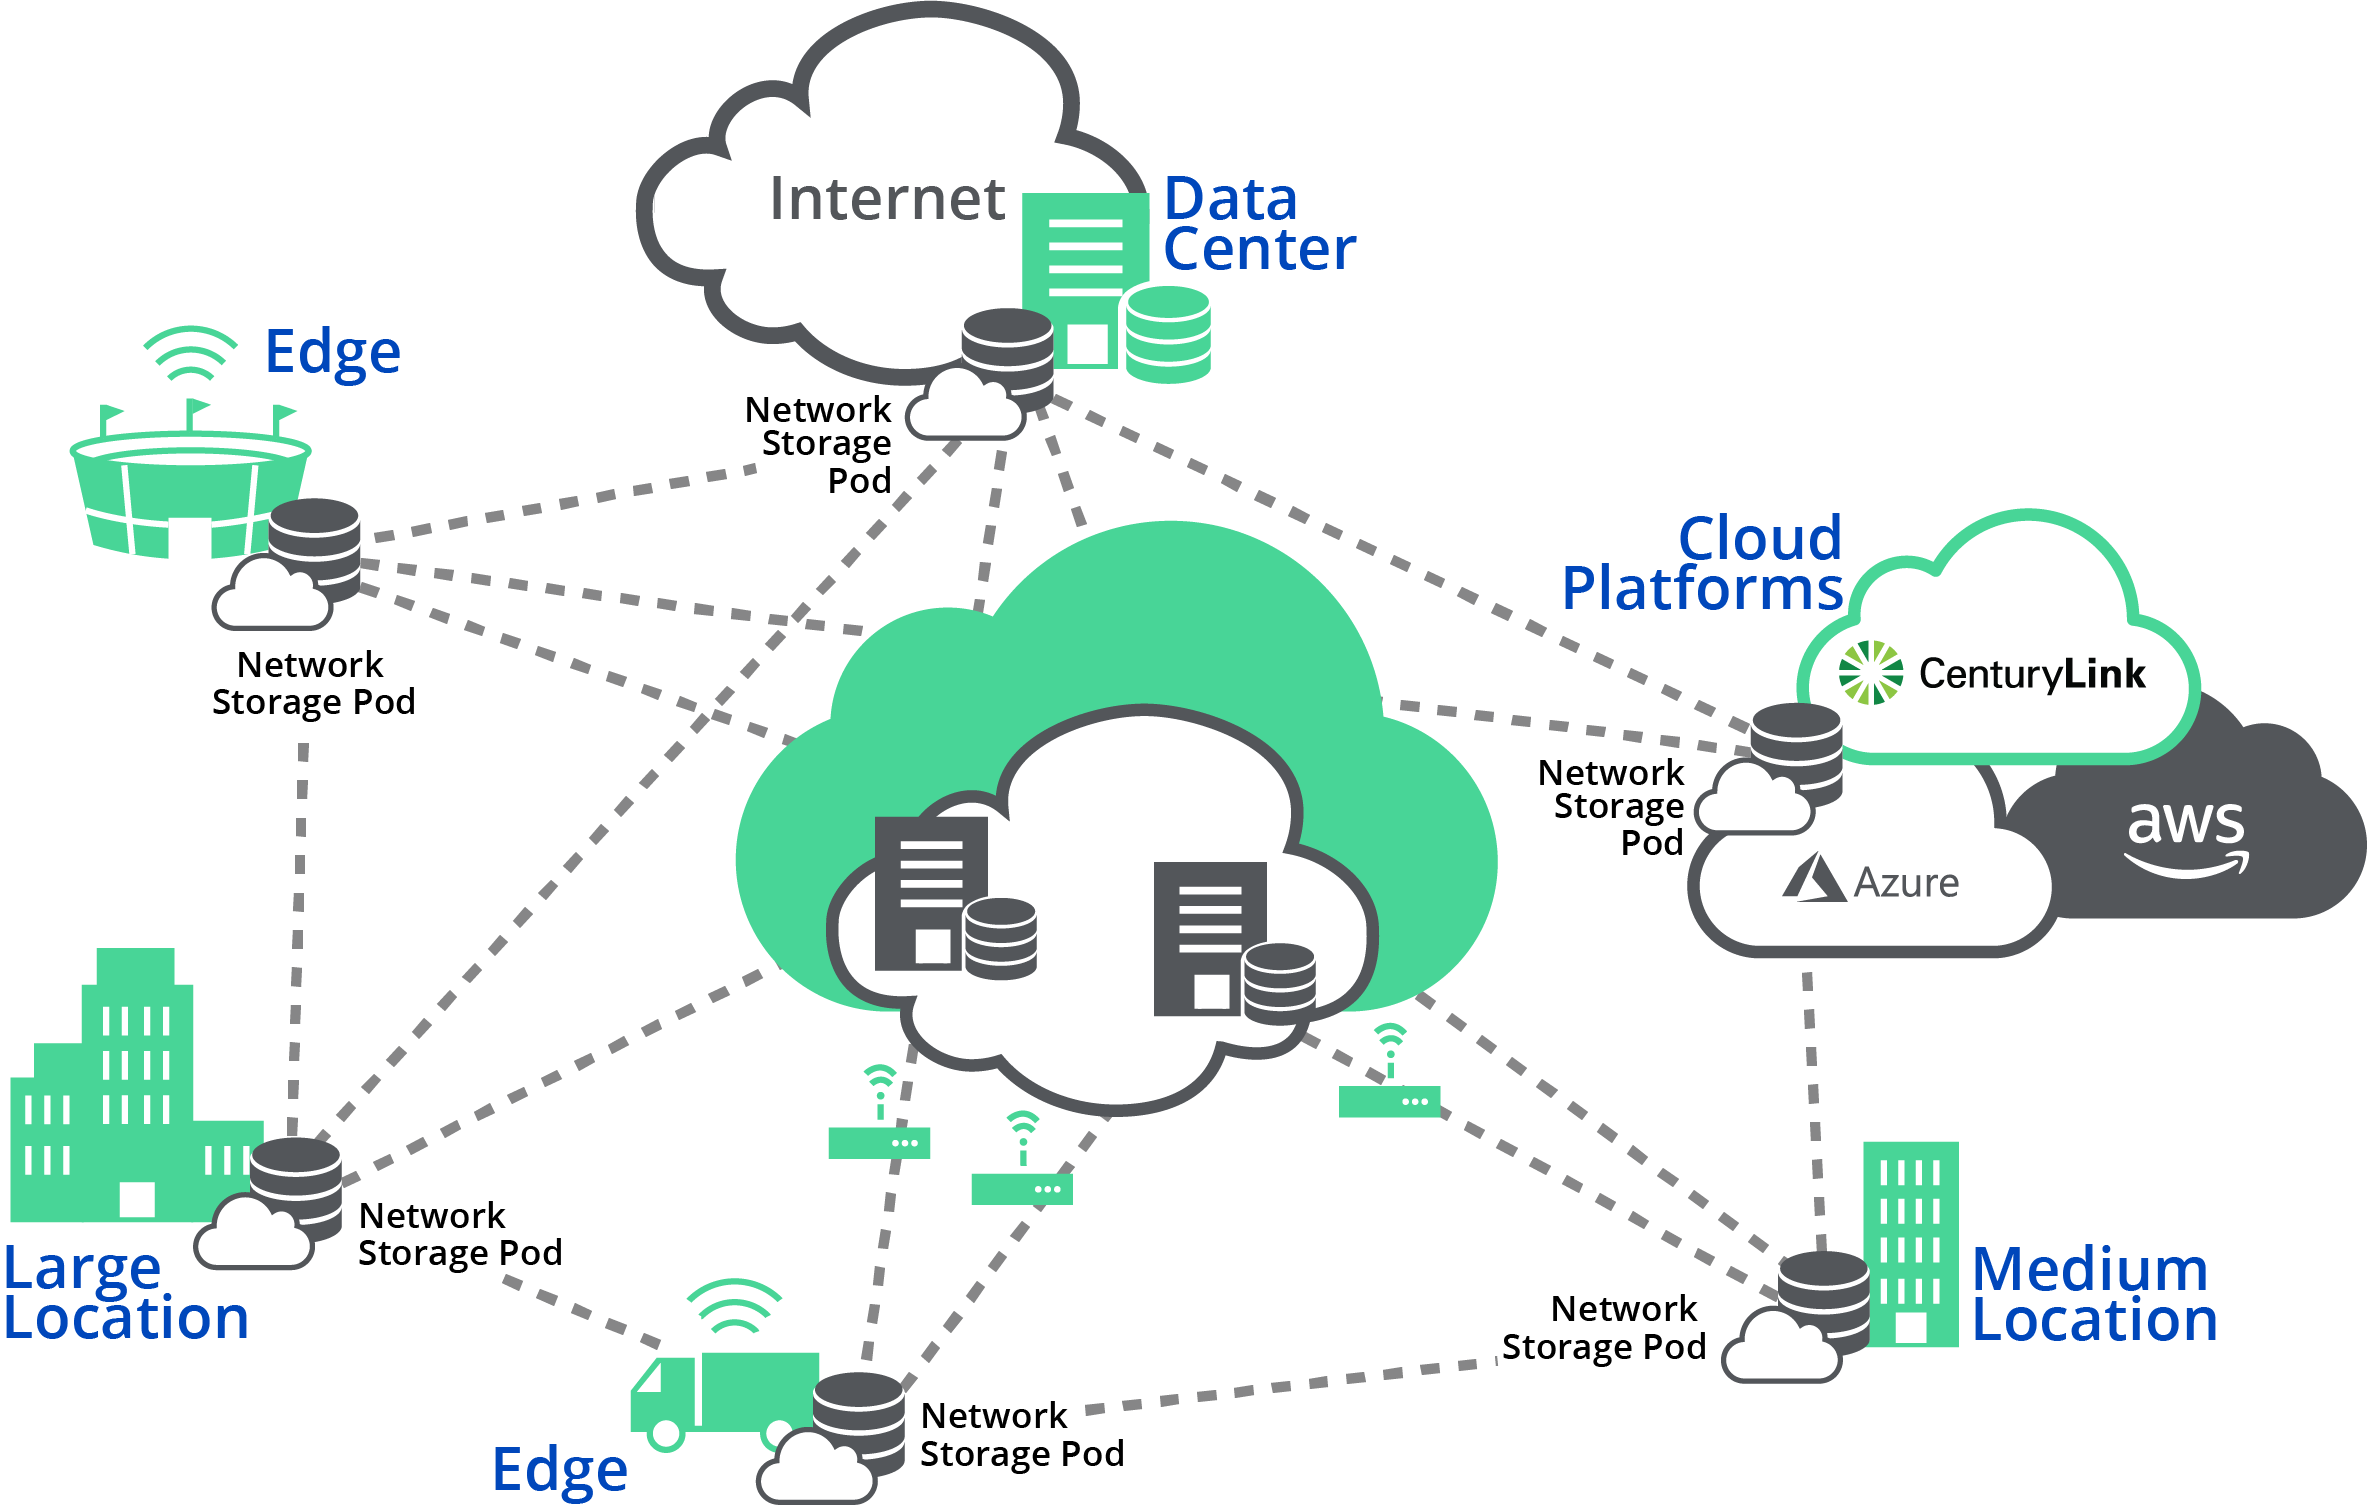 CenturyLink Network Storage brings cloud capabilities of compute and storage to data wherever it is